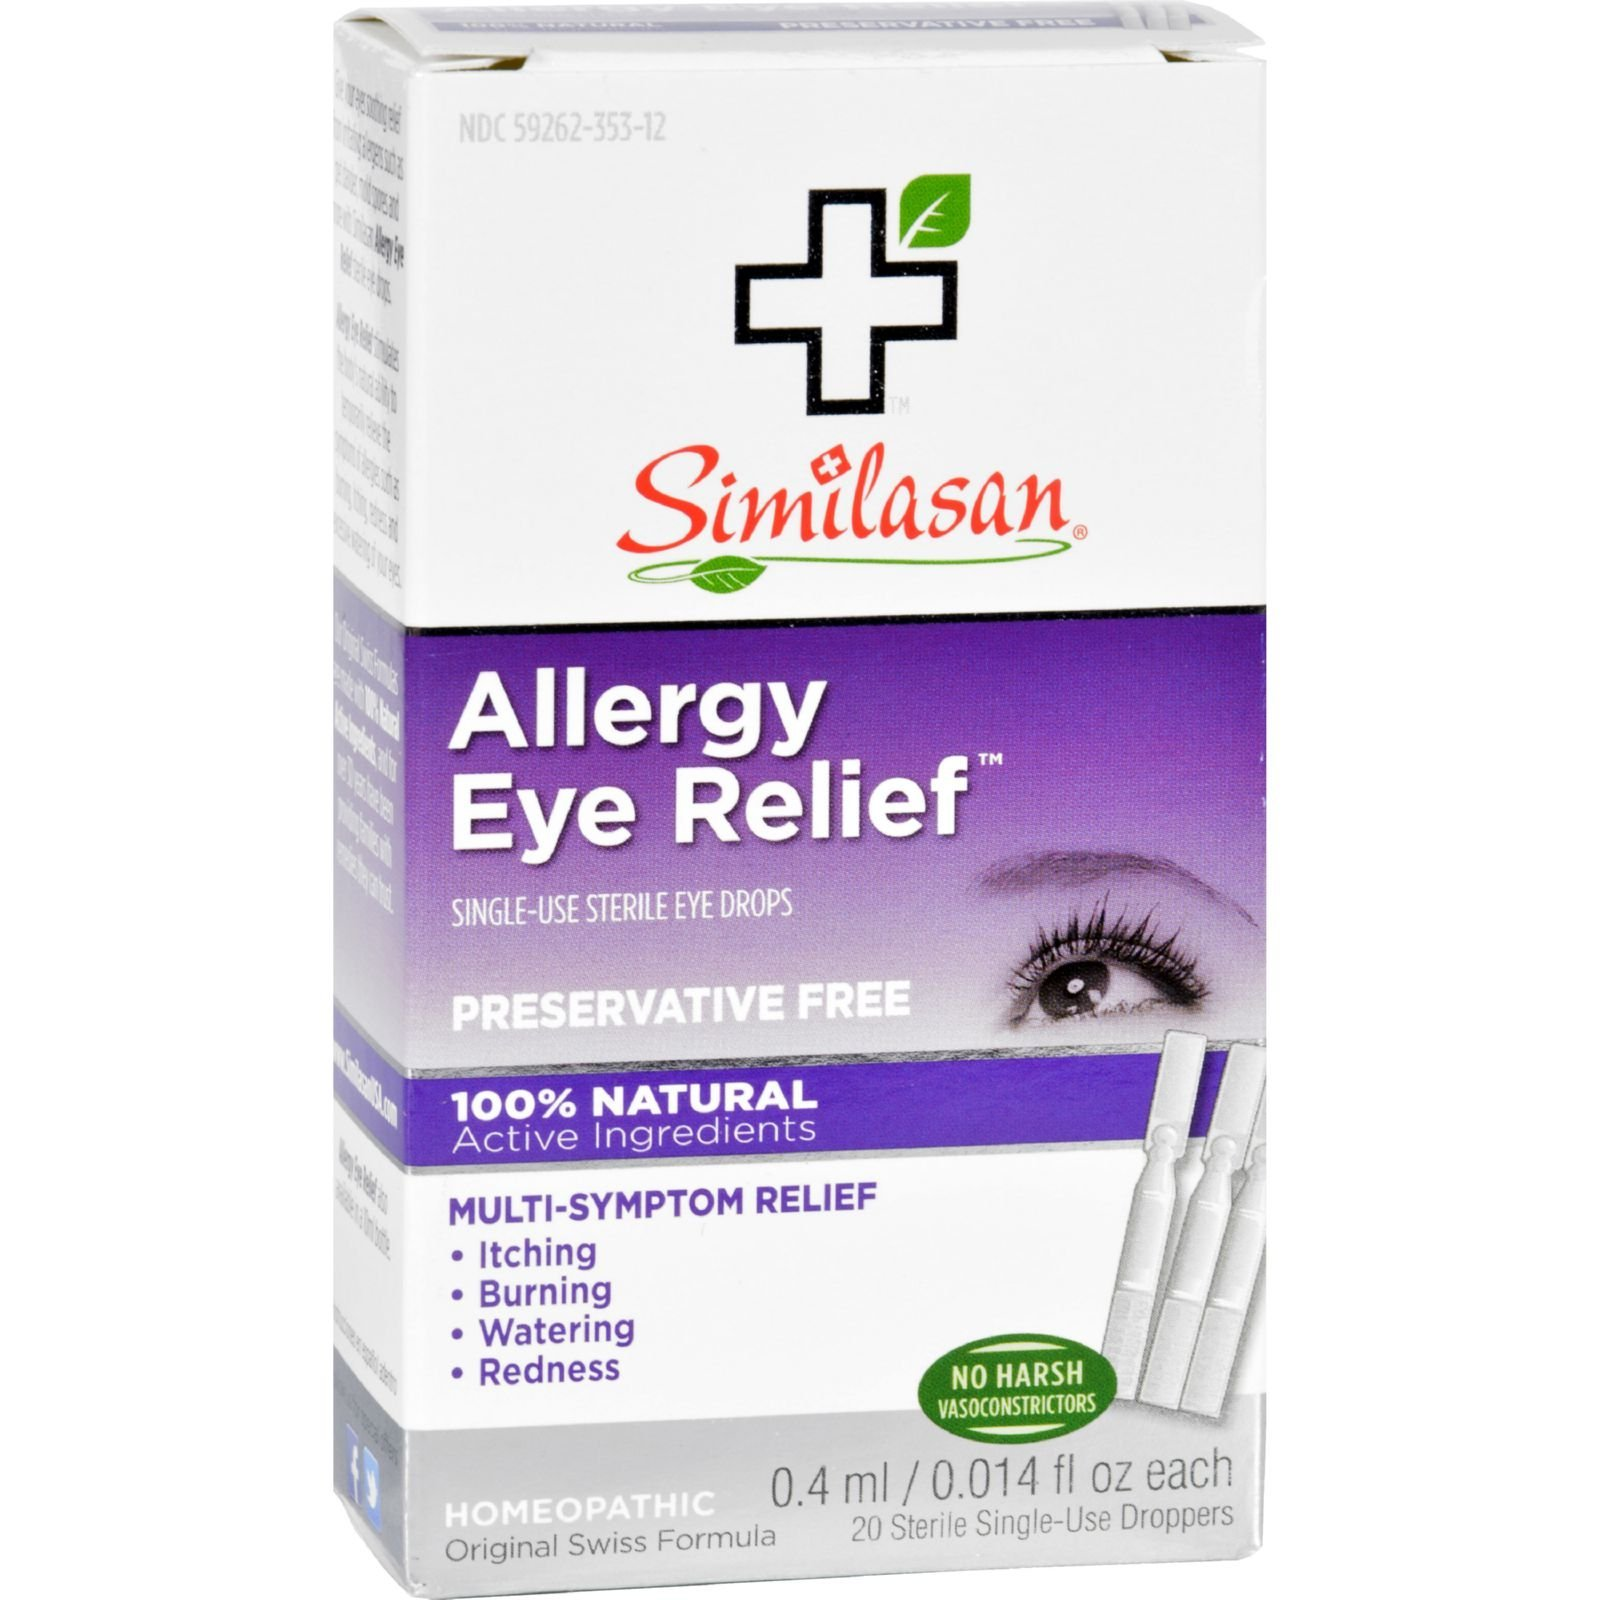 Similasan Allergy Eye Relief - 0.015 fl oz - Relieves Itching, Burning and Watering Associated with Allergies - Homeopathic